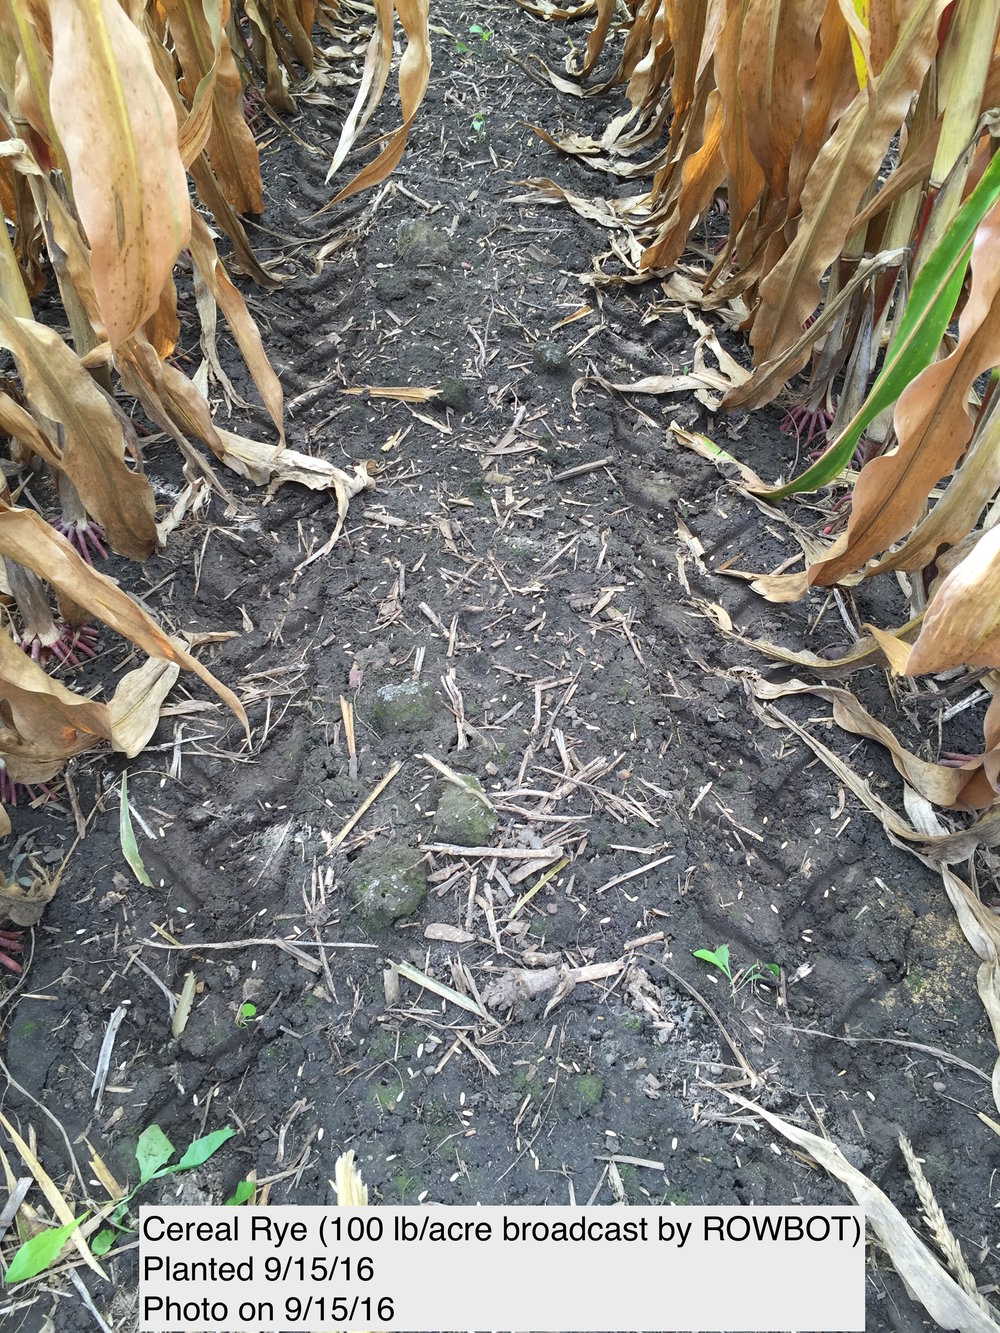 Here you can see the cereal rye seeds photographed just after planting today.